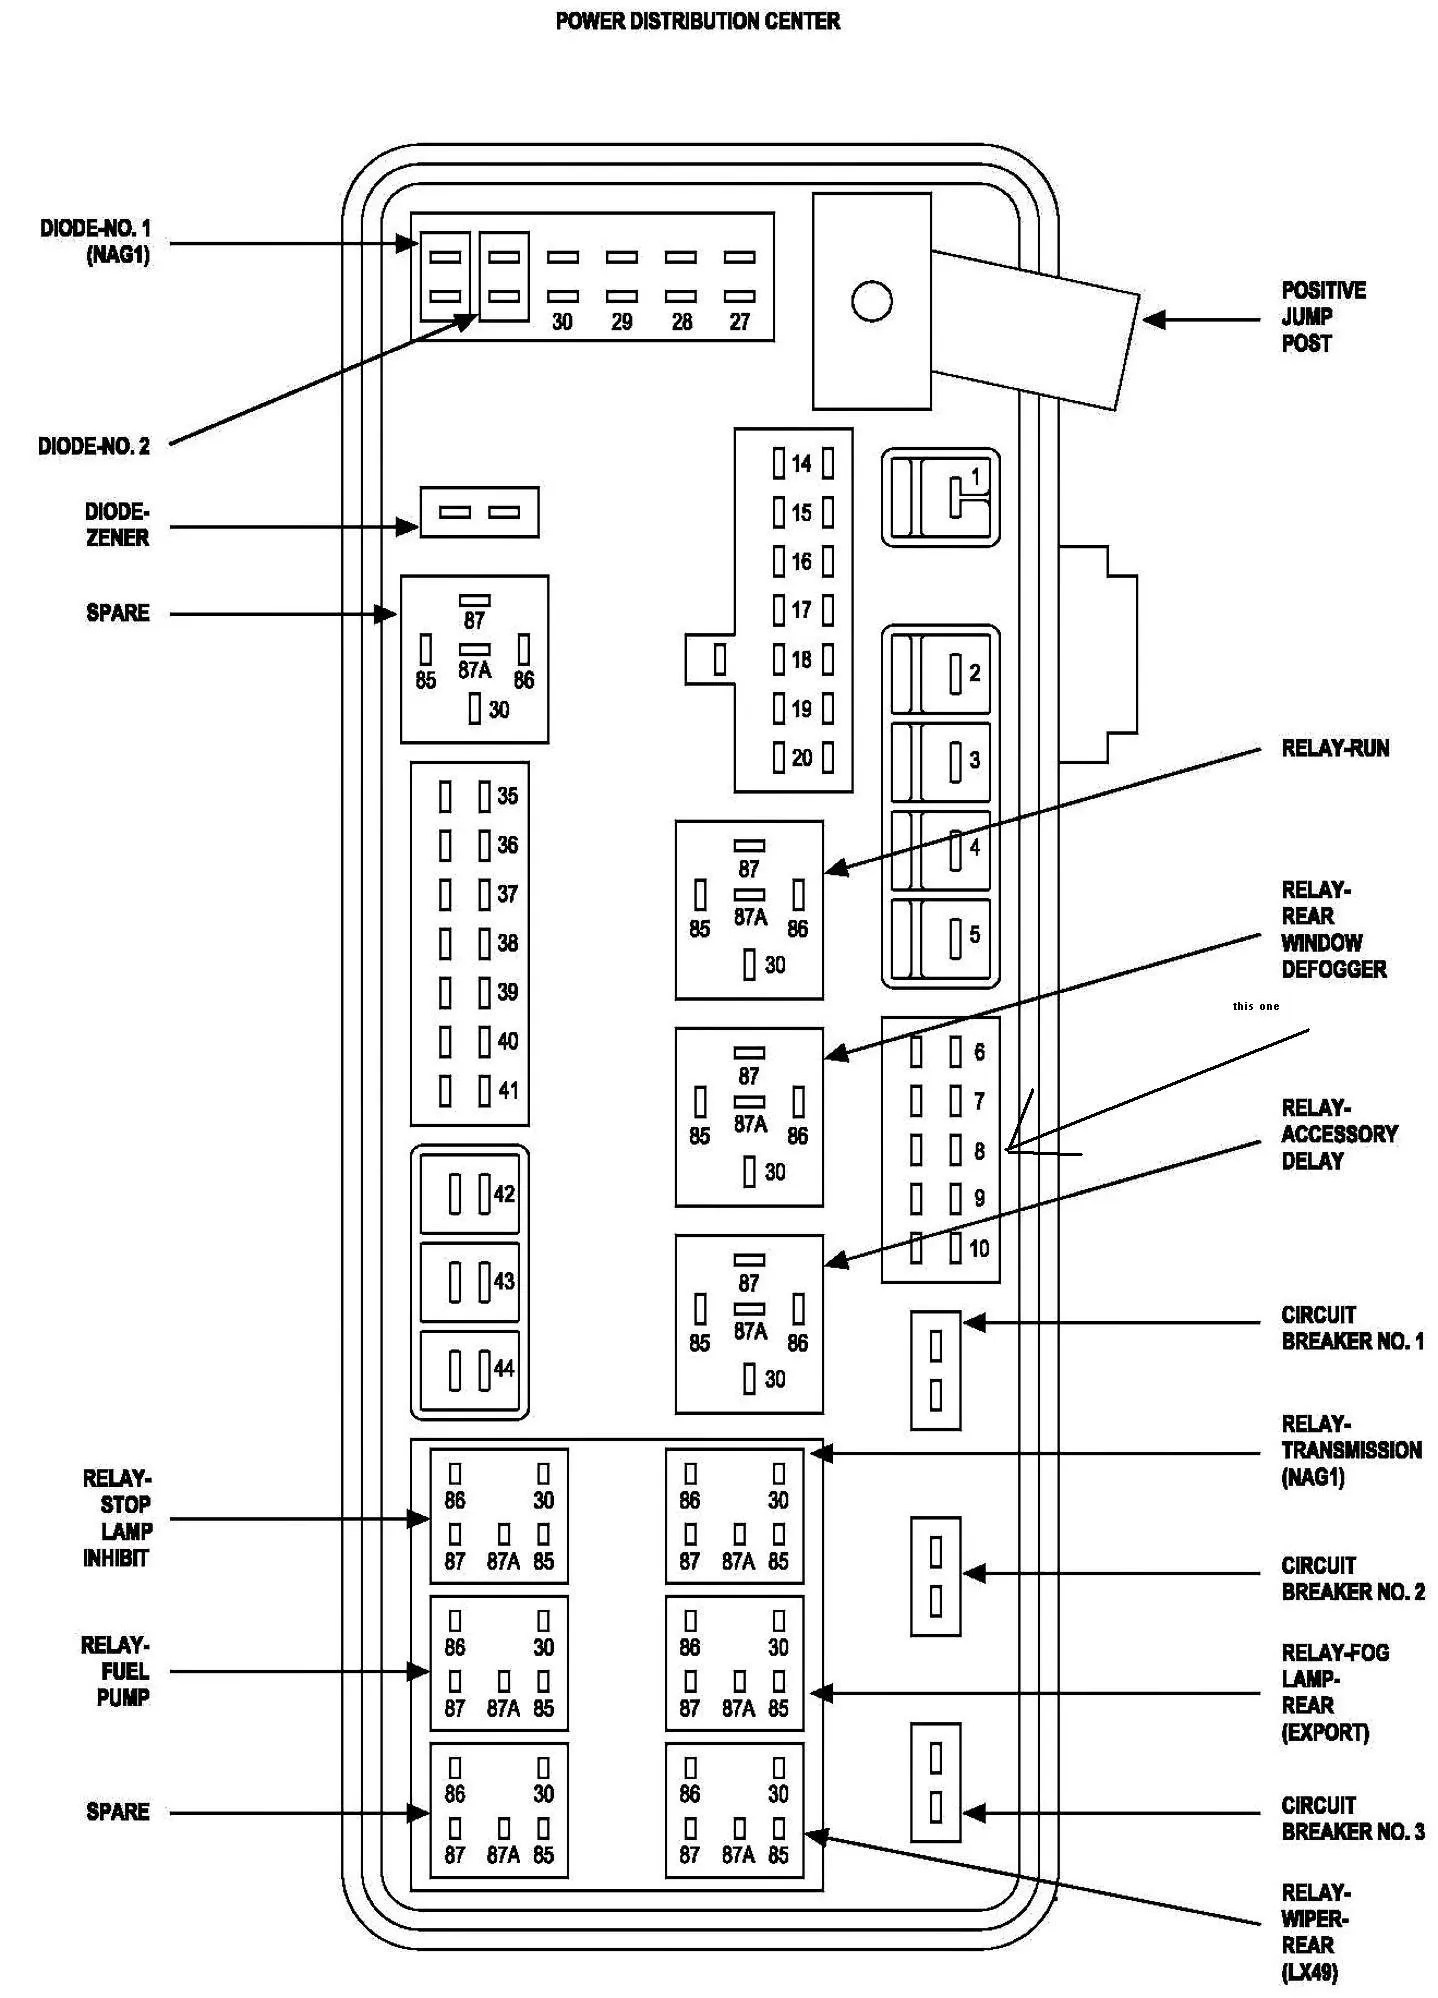 hight resolution of 98 dodge fuse box database wiring diagram1998 dodge ram fuse box diagram free download wiring diagrams